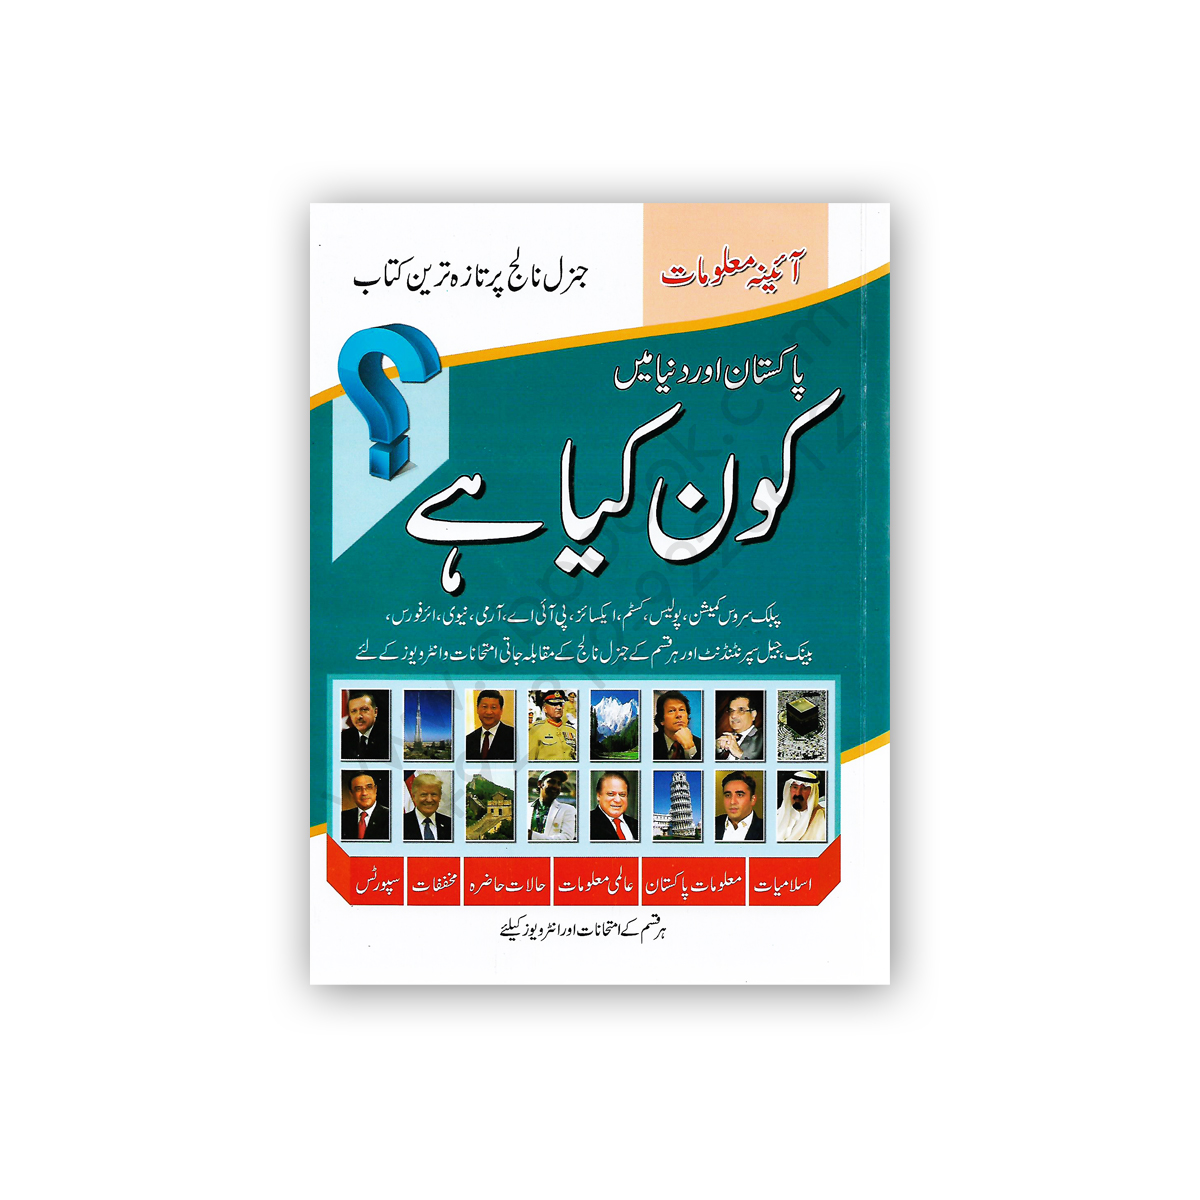 who is who & what is what 2018 (urdu) by ali sher qureshi - rehman book house